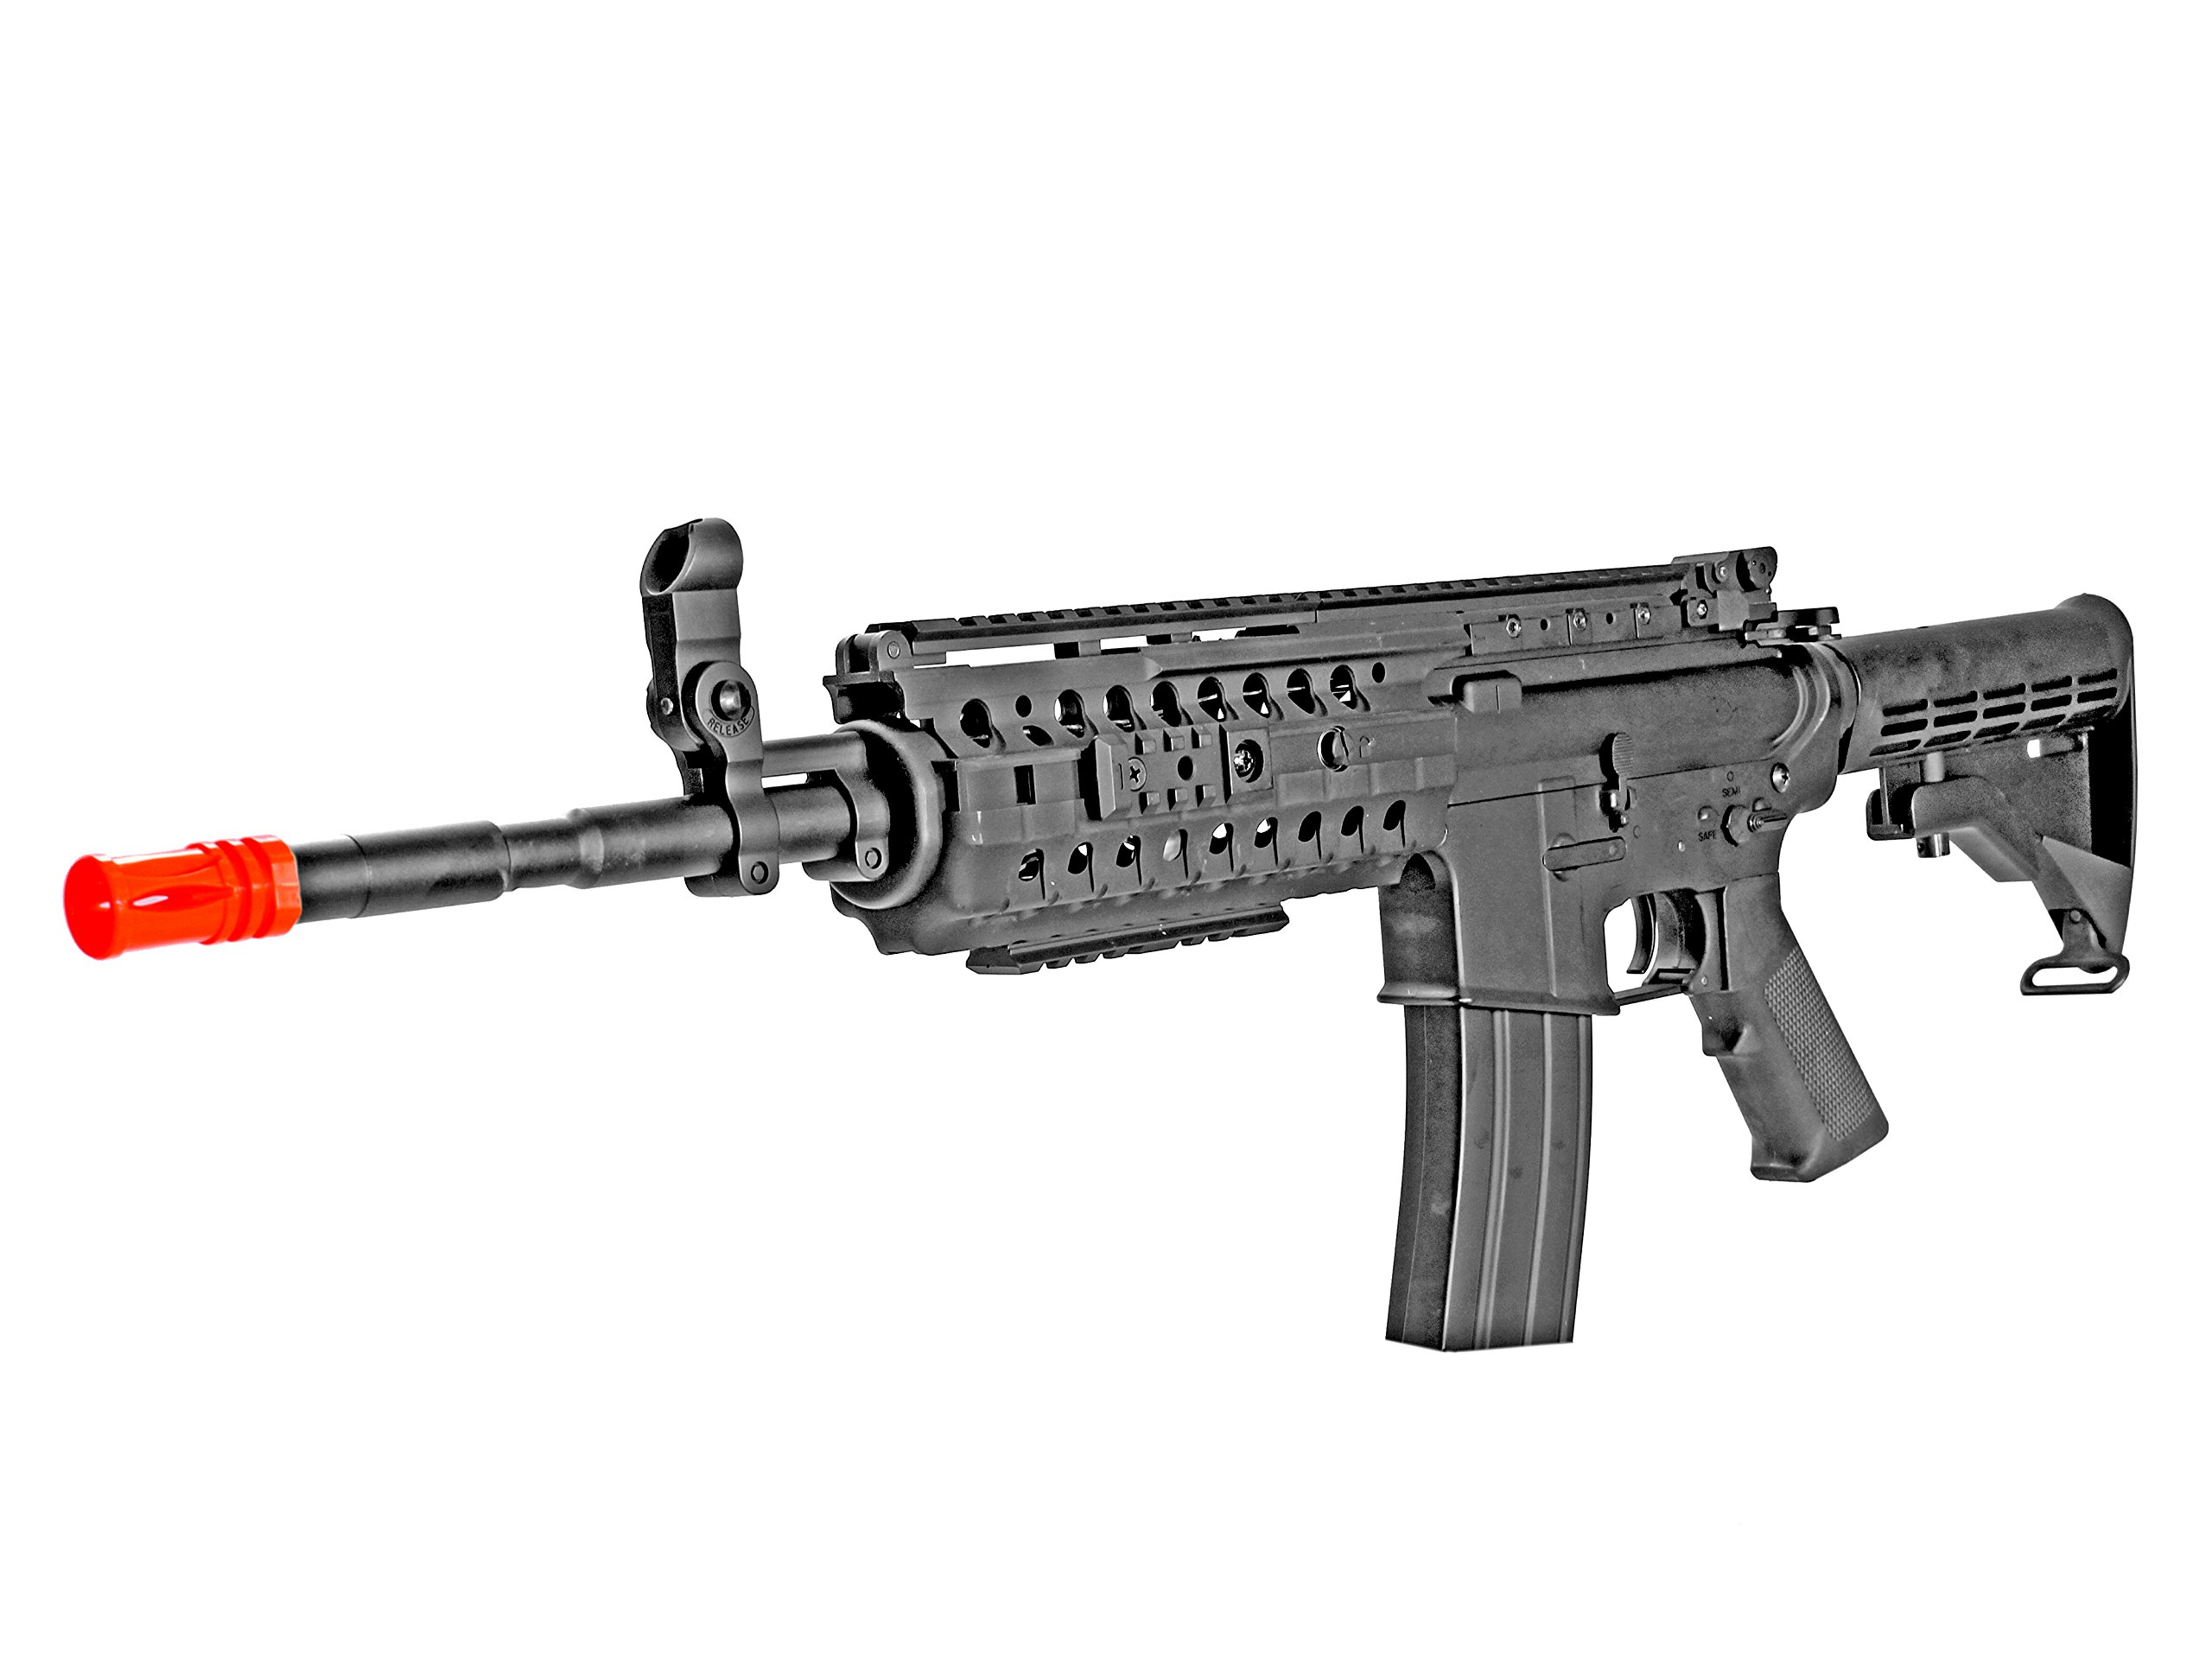 MetalTac CYMA CM016 Electric Airsoft Gun with Metal Gearbox Version 2, Tactical Rail System, Full Auto AEG, Powerful Spring 415 Fps with .20g BBs